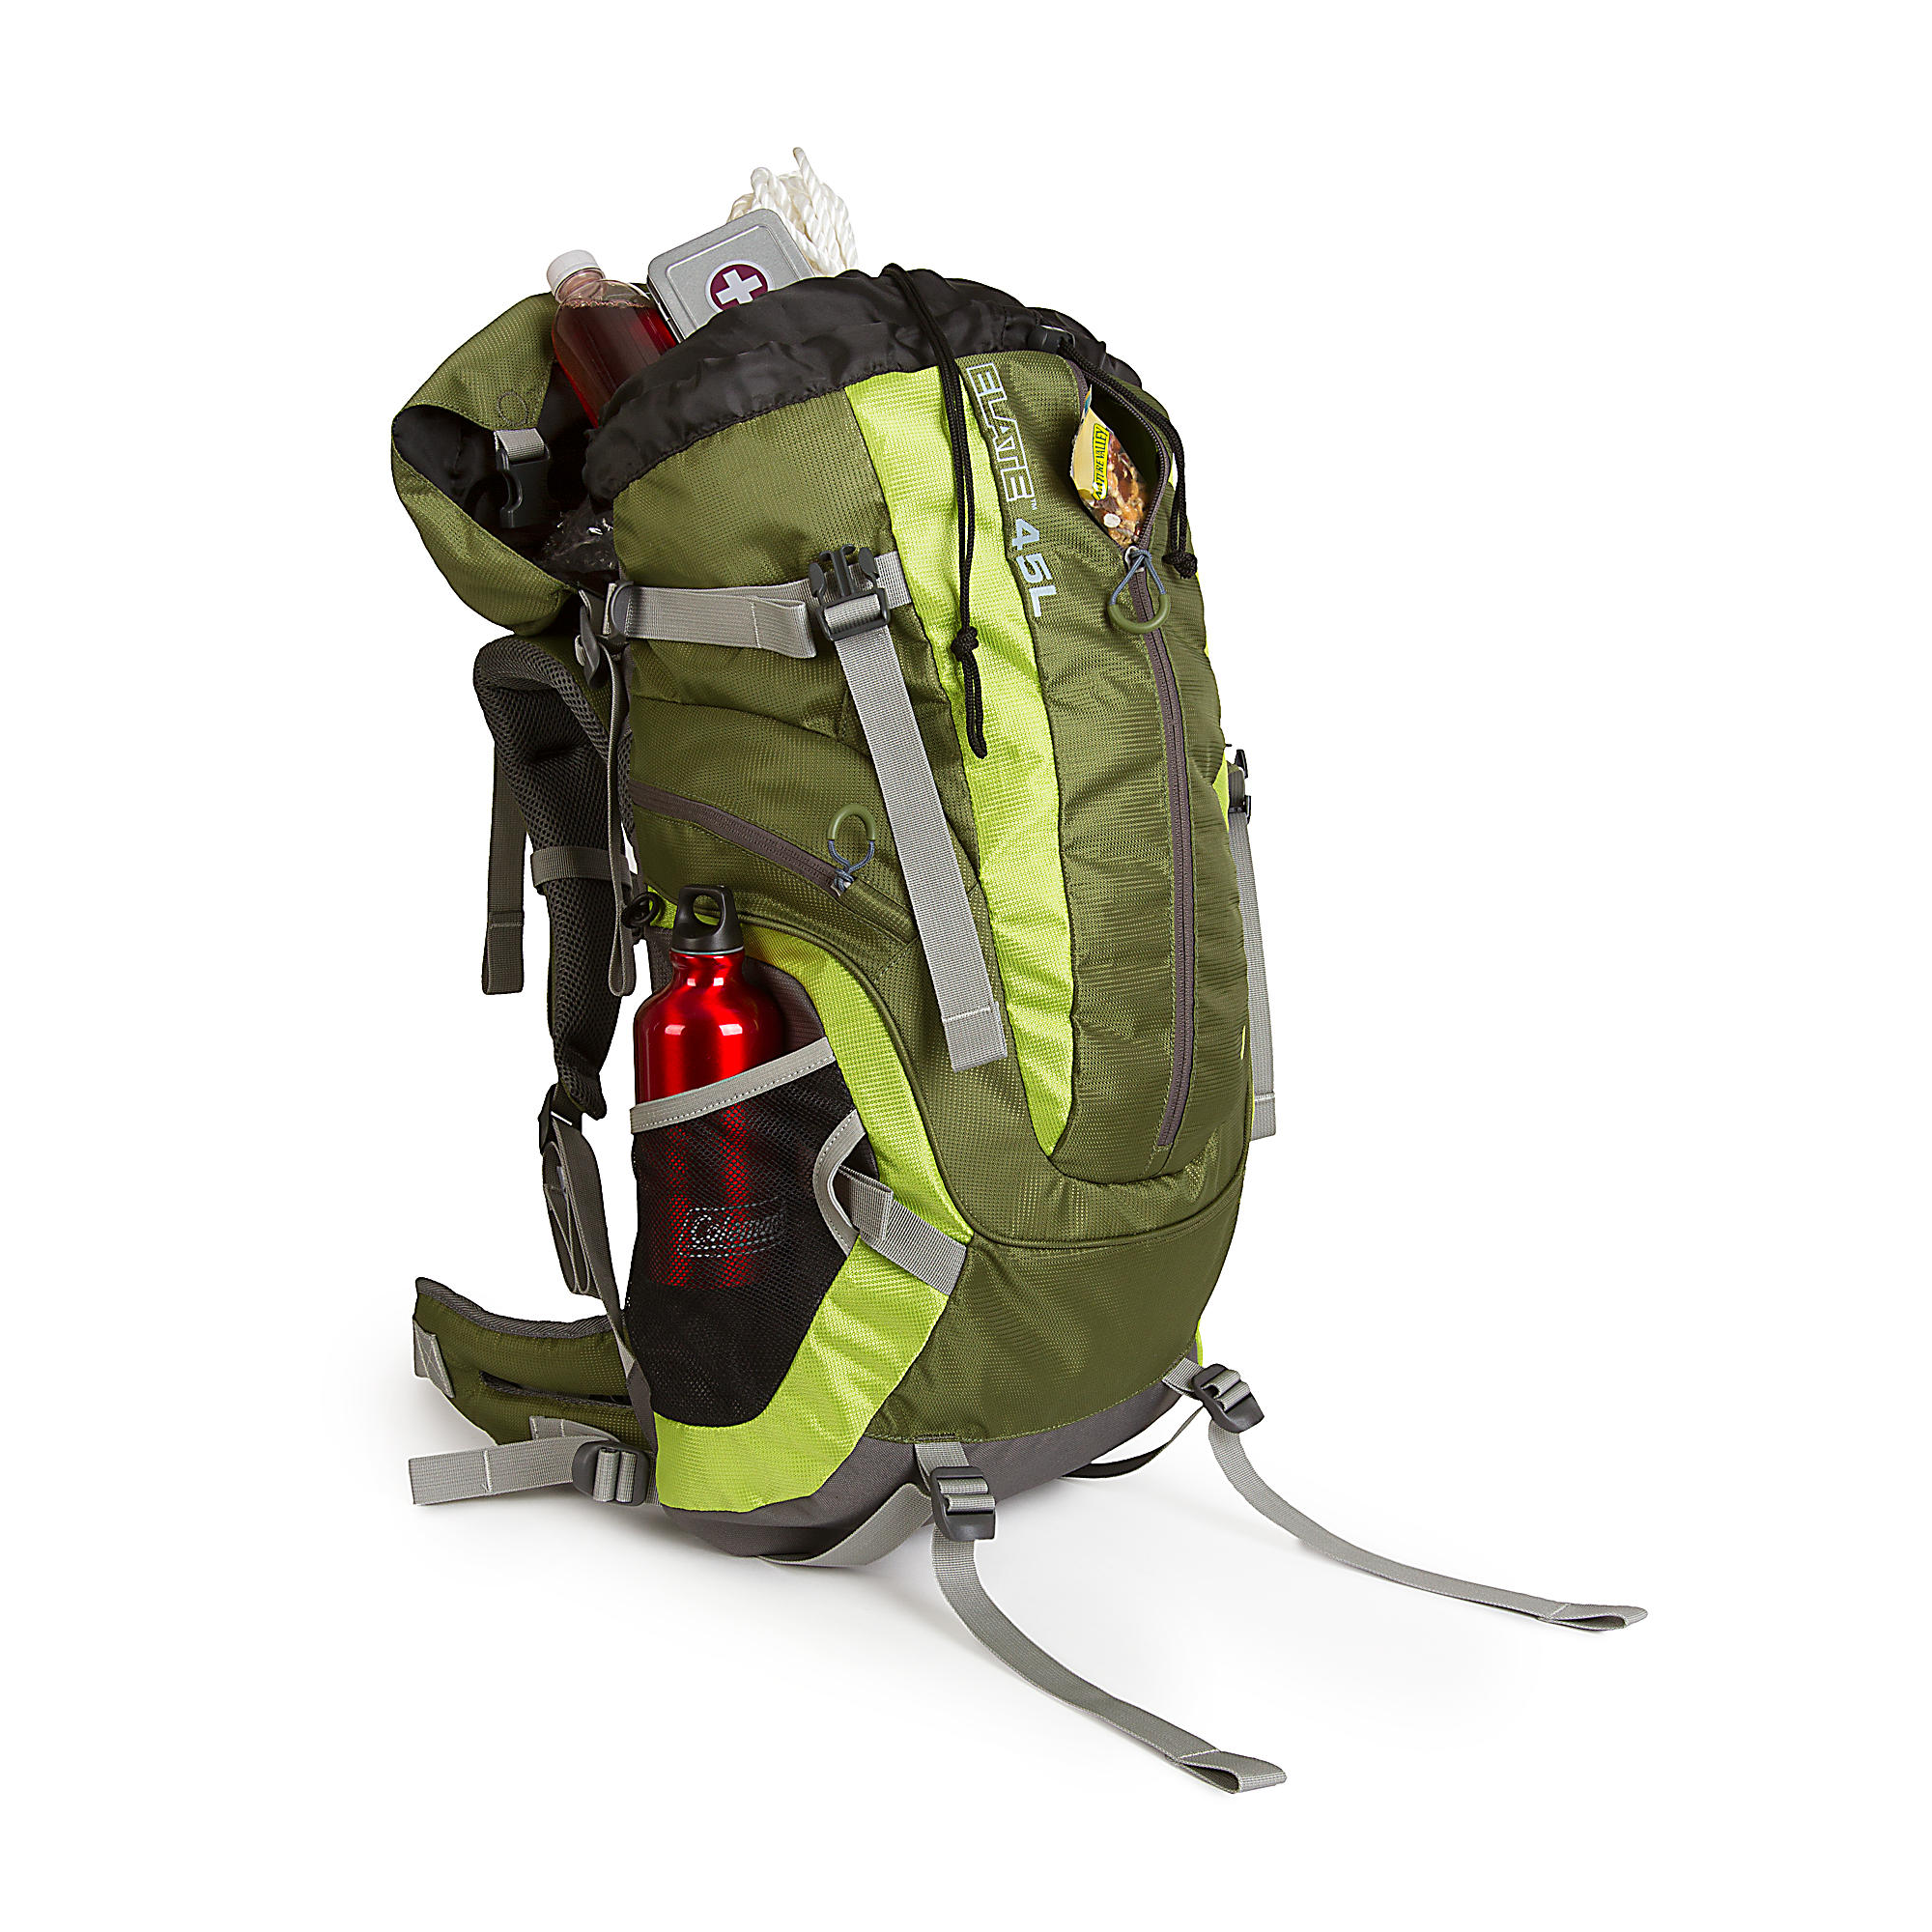 Elate 45 backpack